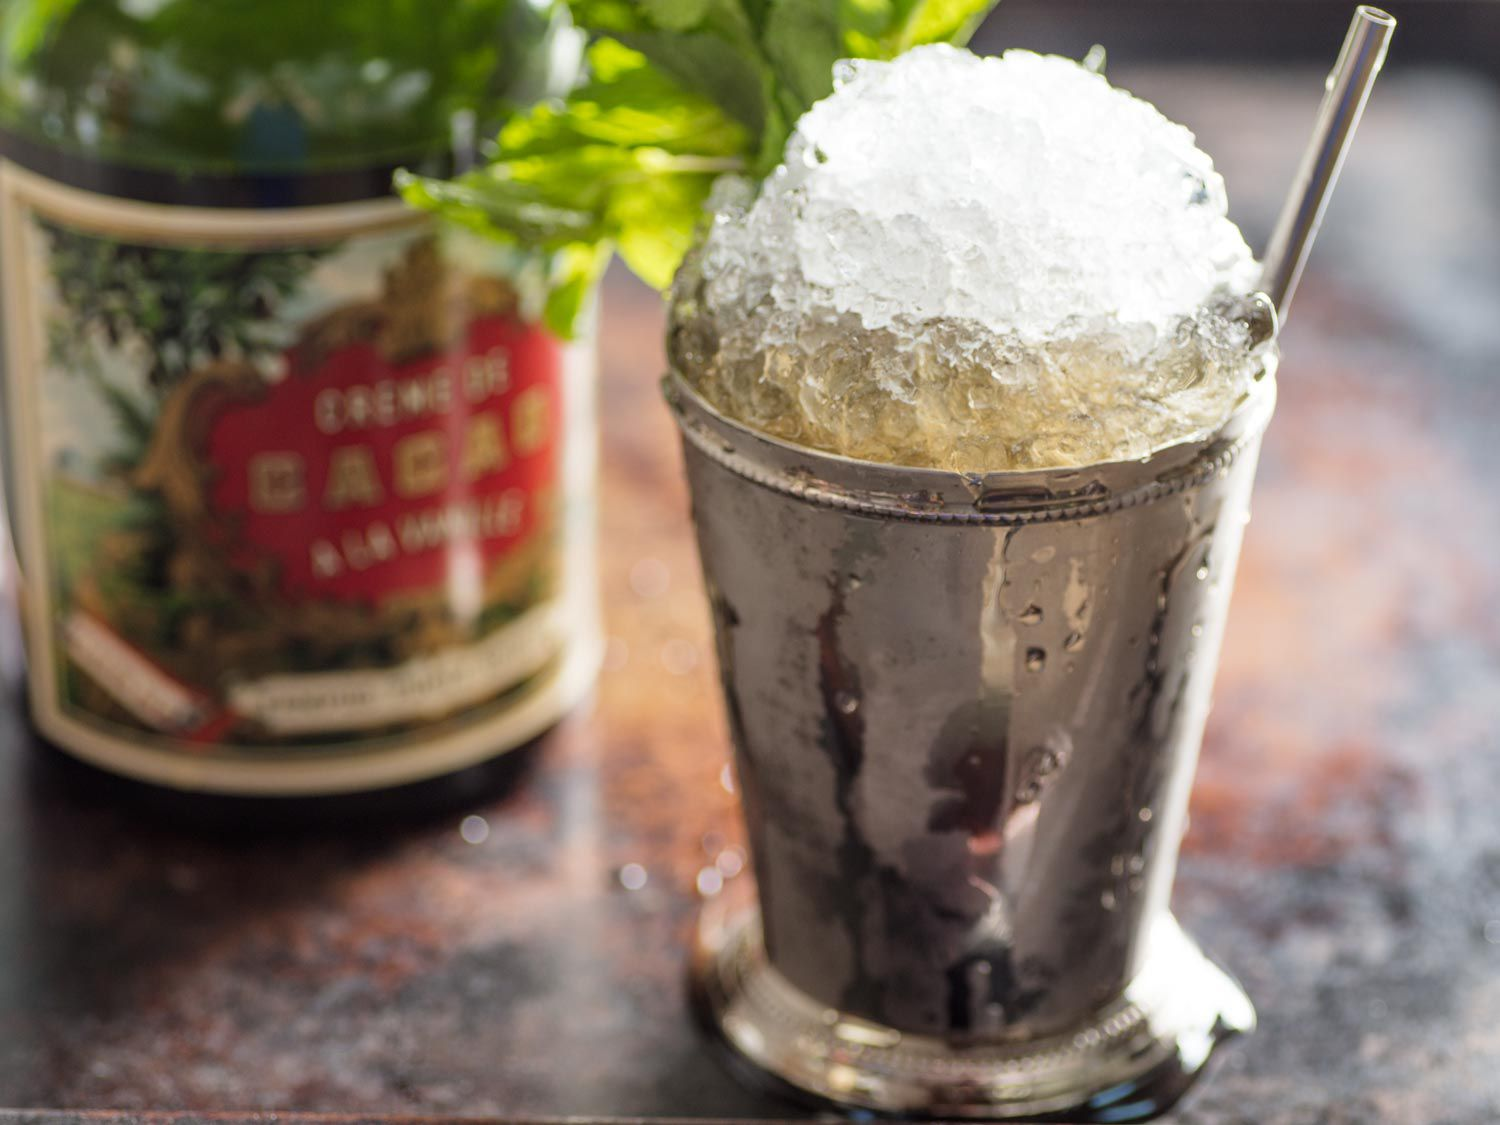 A chocolate mint julep in a frosted julep cup, with a bottle of crème de cacao in the background